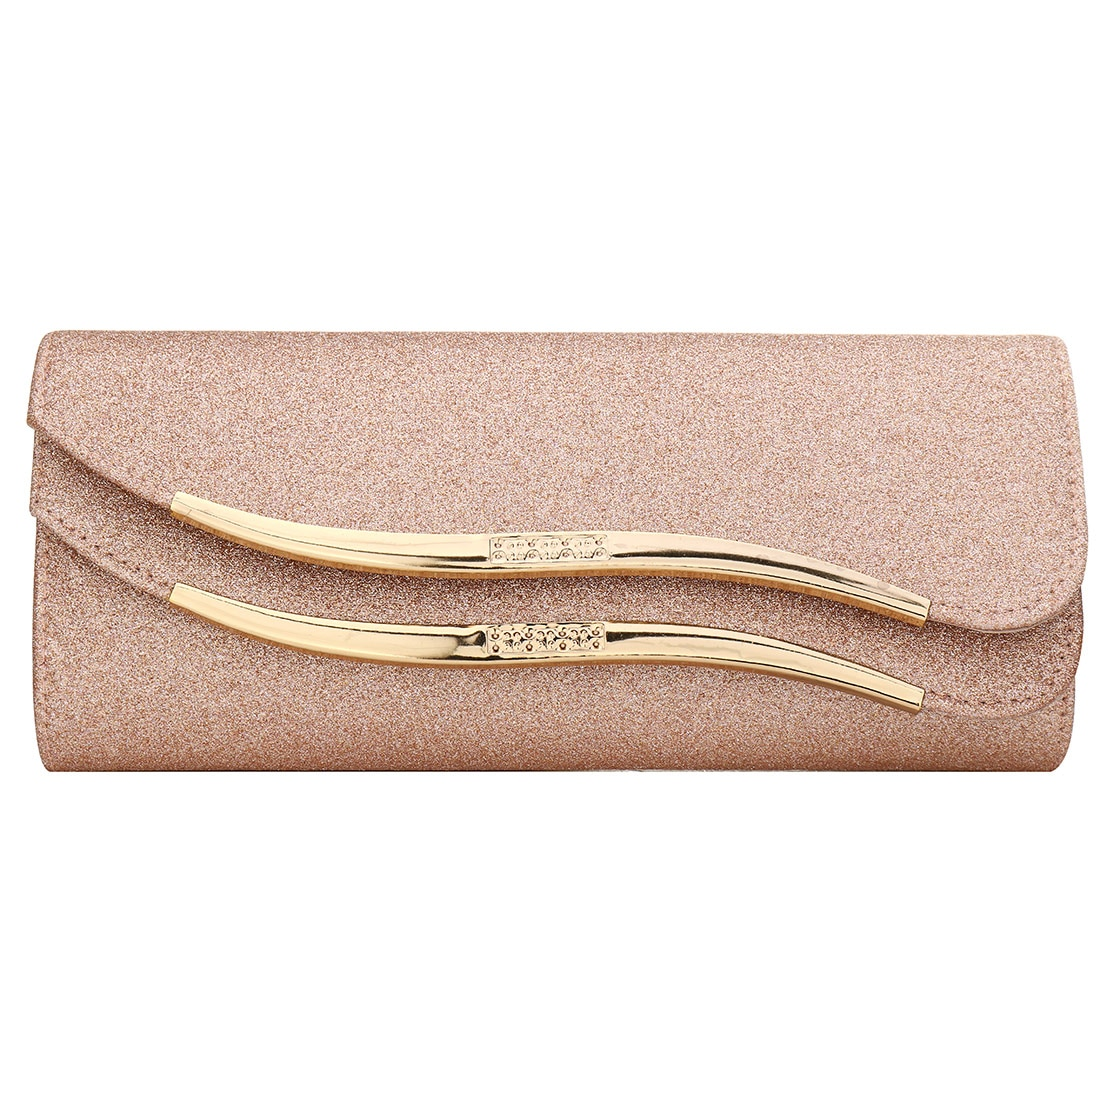 New Fashion Sequined Envelope Clutch WomenS Evening Bags Bling Day Clutches Pink Wedding Purse Female Handbag 2019 Banquet Bag